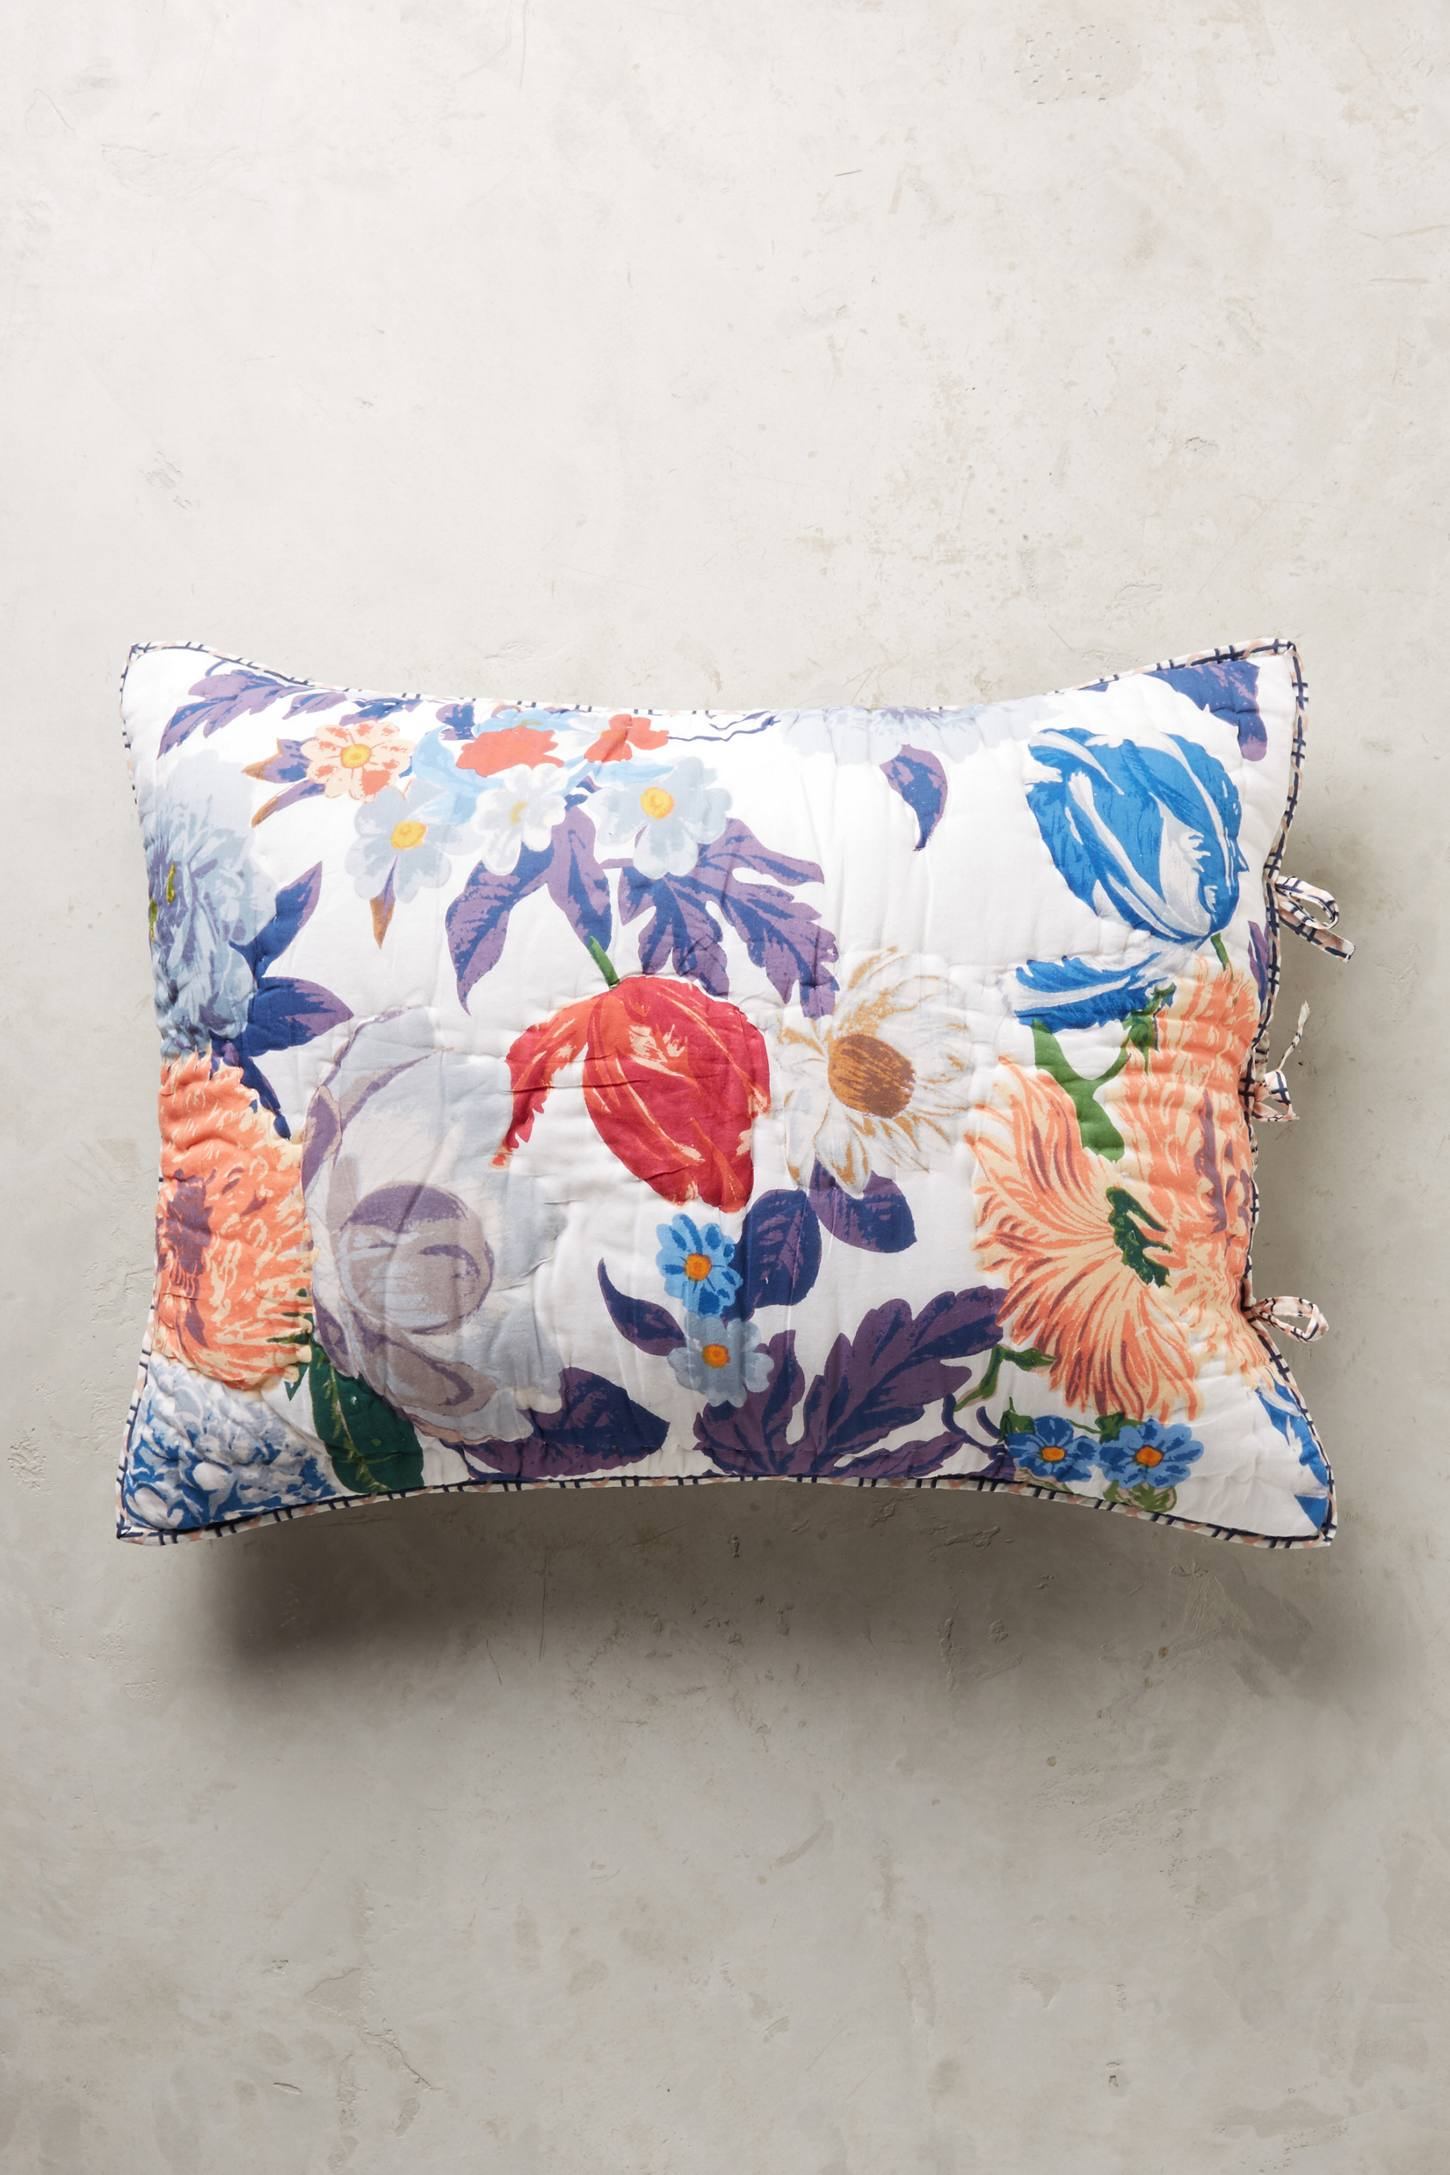 Anthropologie fall sale home decor items 40 percent off for Anthropologie mural